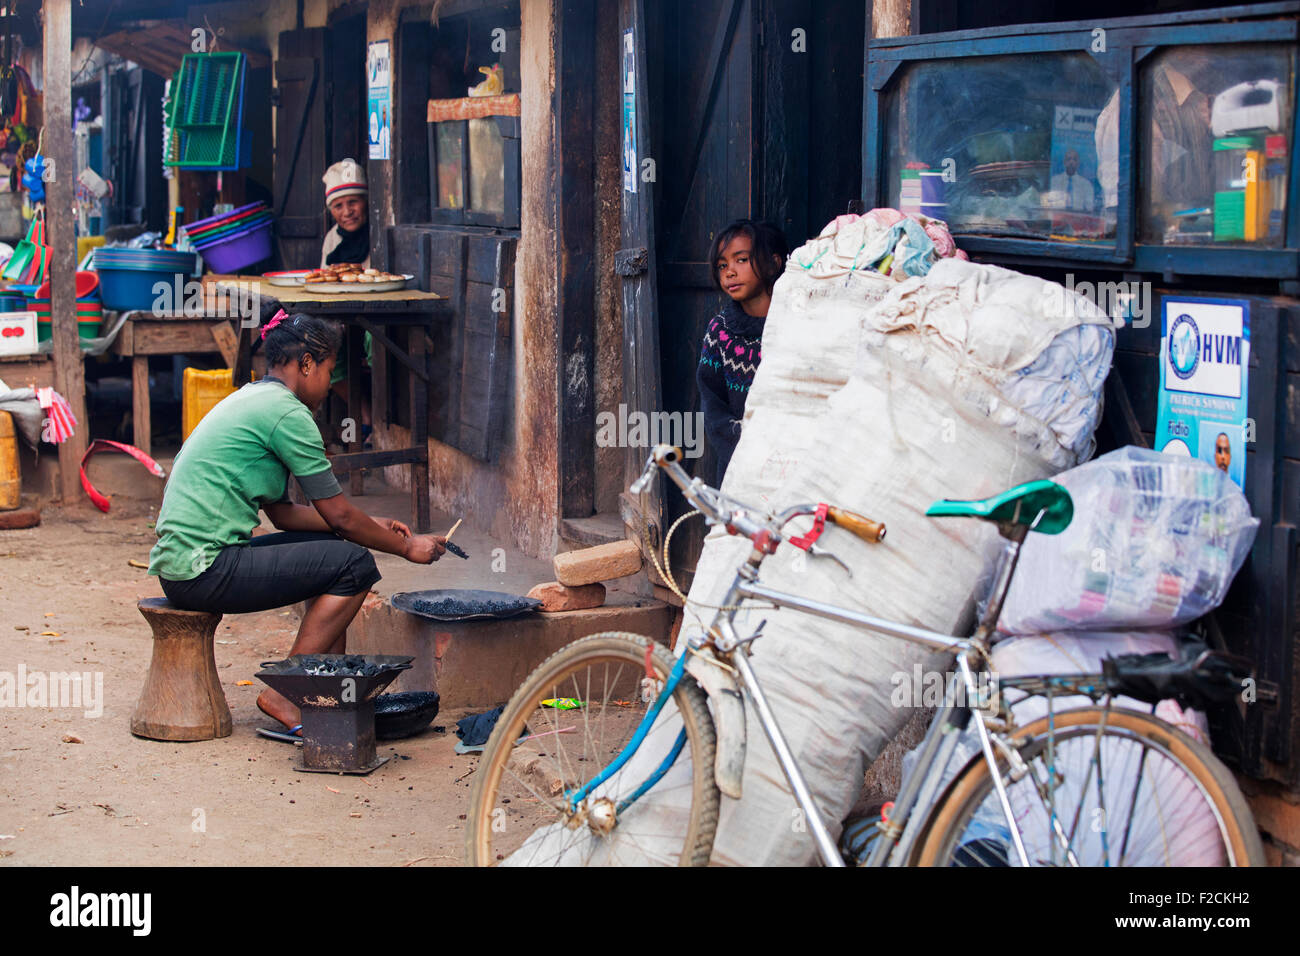 Malagasy woman cooking on charcoal in the dusty shopping street of the city Ambalavao, Haute Matsiatra, Madagascar, - Stock Image